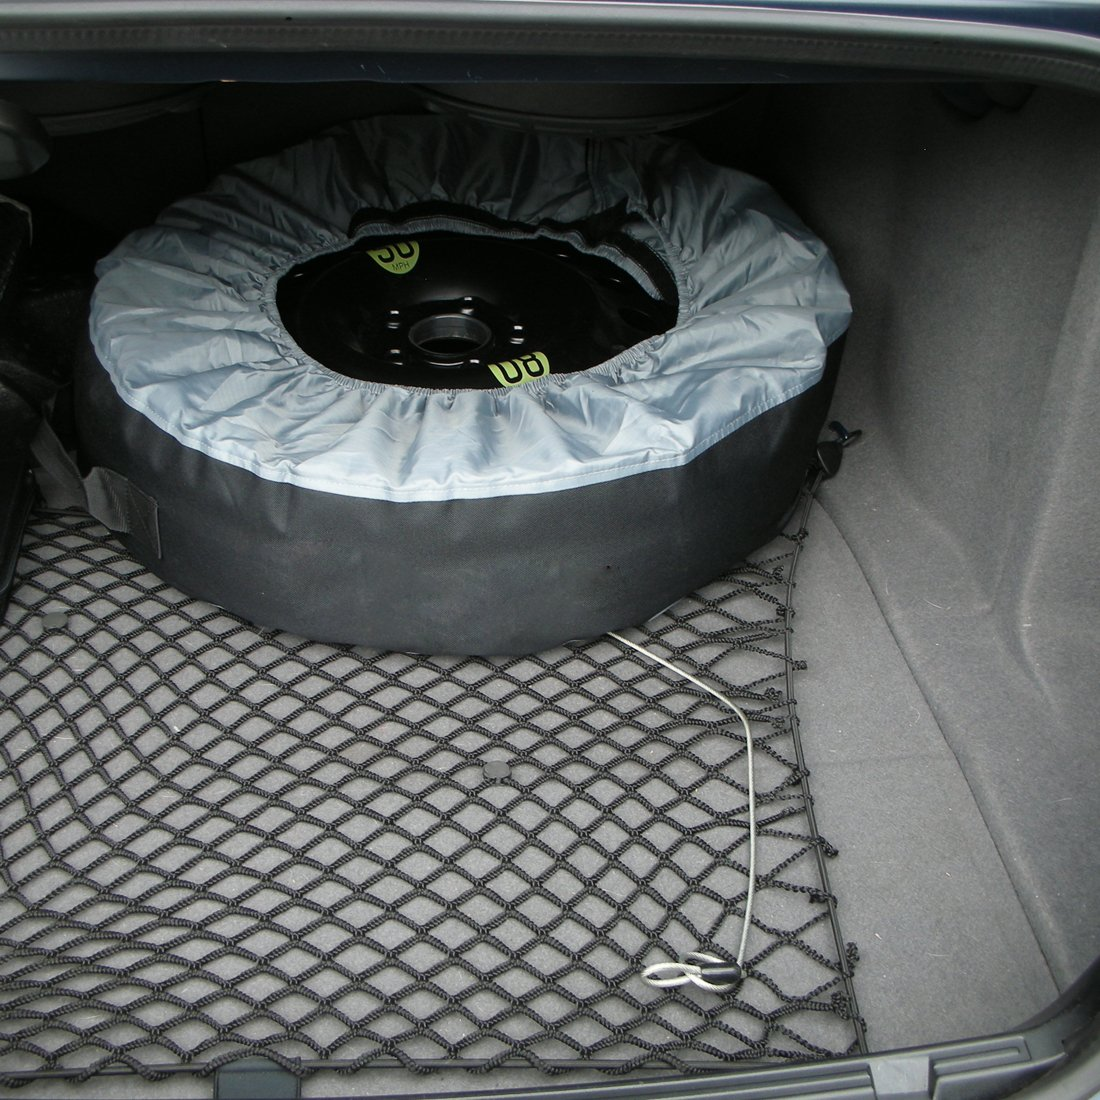 FLR Tire Tote Adjustable Waterproof Grey 30in Tire Covers Bags Seasonal Tire Storage Bag for Car Off Road Truck Tire Totes Set of 4 by FLR (Image #7)